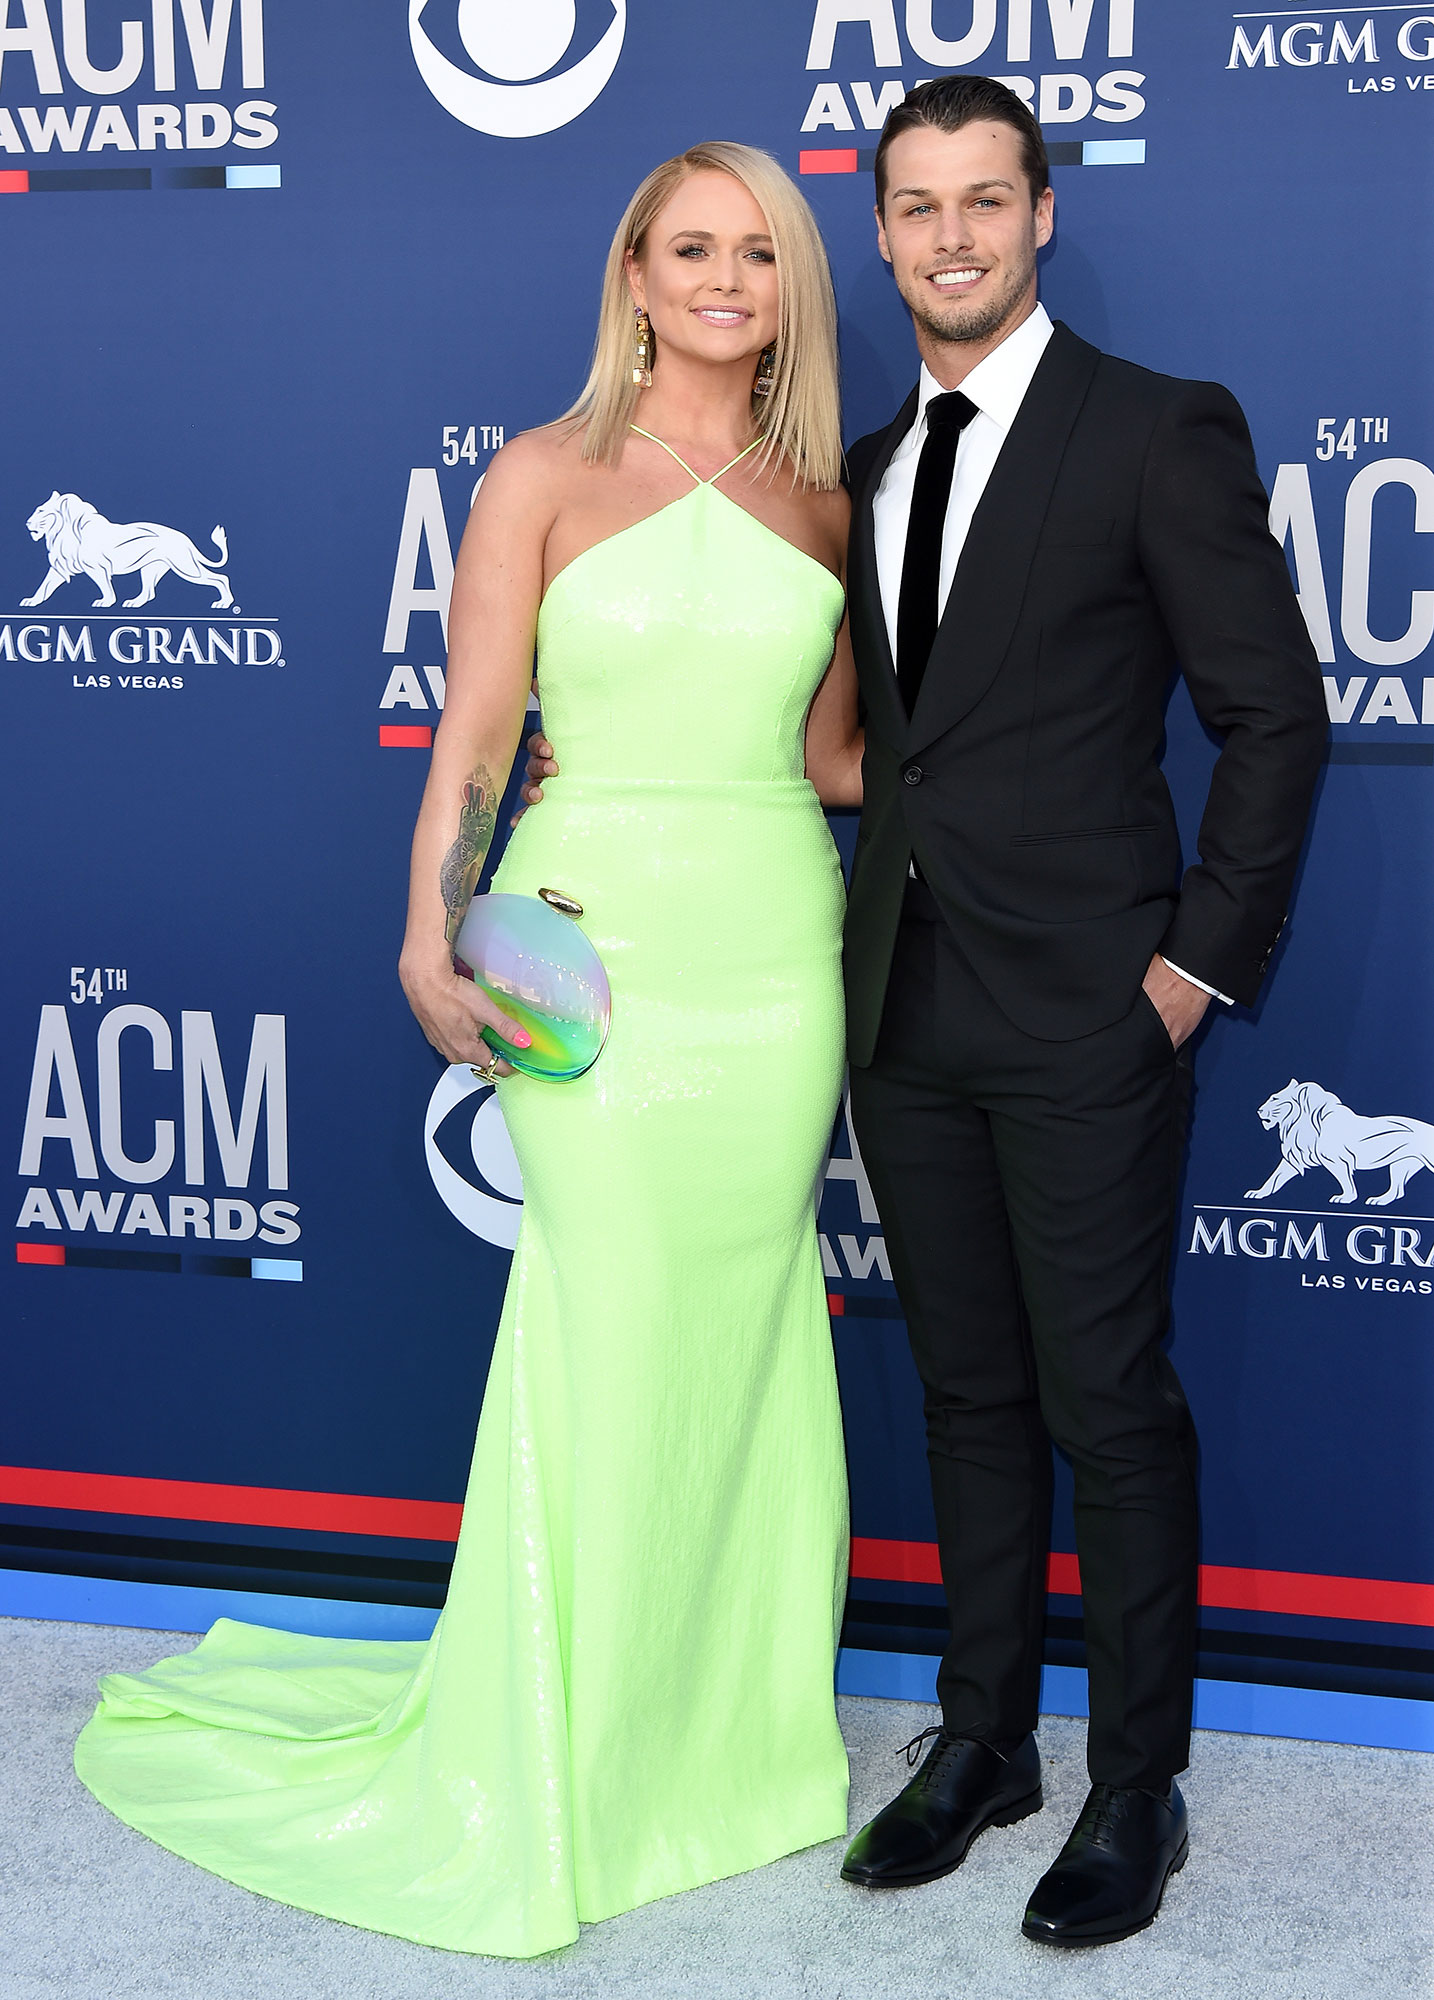 Miranda Lambert and Brendan McLoughlin ACM Awards - LAS VEGAS, NEVADA – APRIL 07: Miranda Lambert and Brendan McLoughlin attend the 54th Academy of Country Music Awards at MGM Grand Garden Arena on April 07, 2019 in Las Vegas, Nevada. (Photo by Axelle/Bauer-Griffin/FilmMagic)